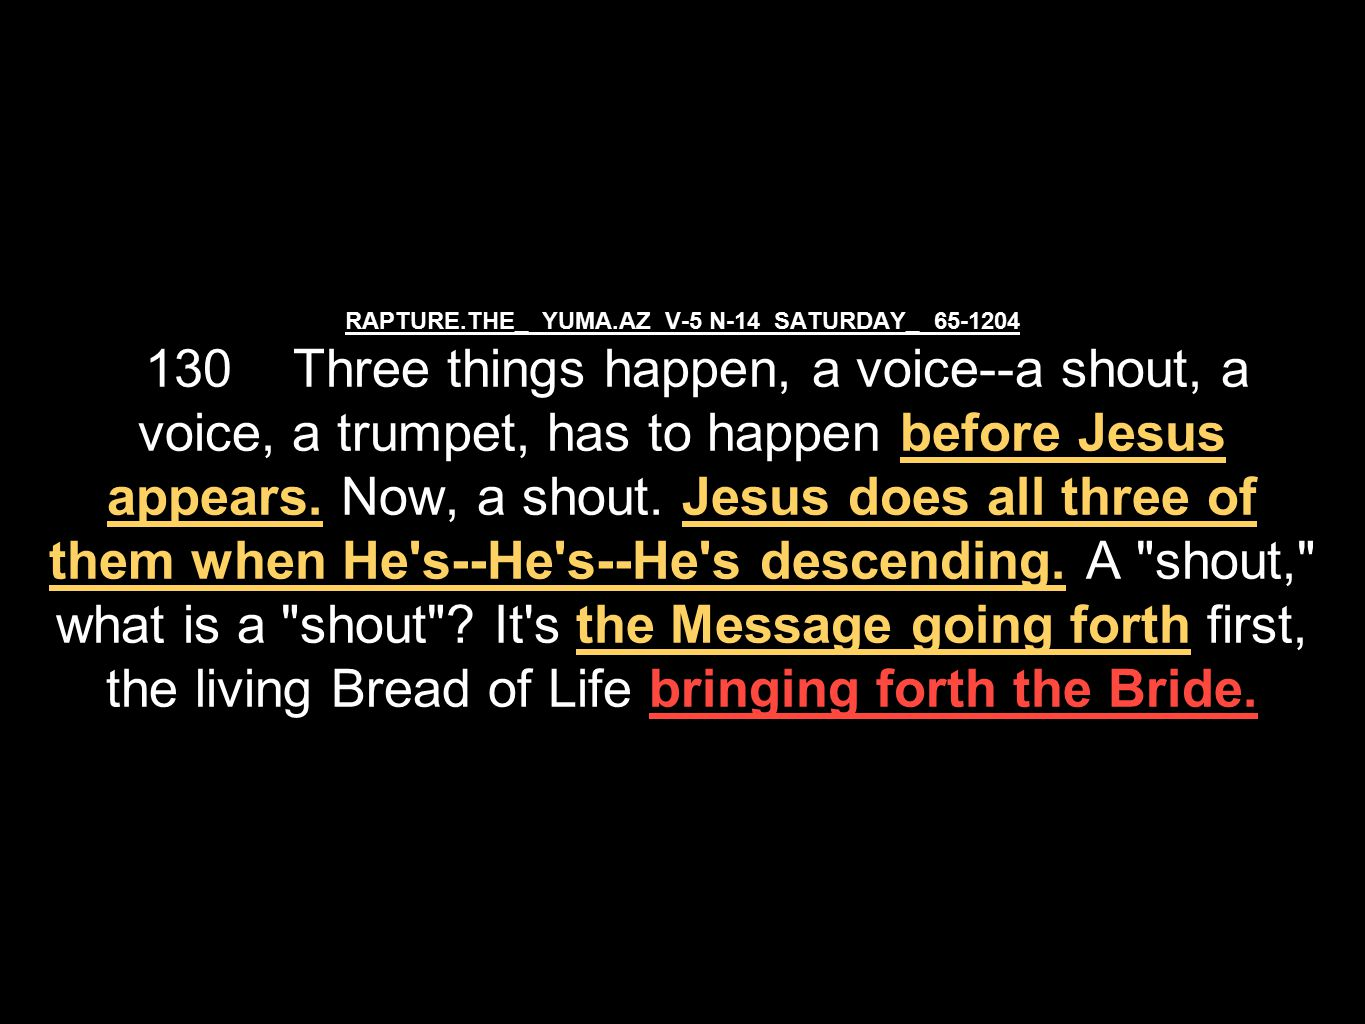 RAPTURE.THE_ YUMA.AZ V-5 N-14 SATURDAY_ 65-1204 130 Three things happen, a voice--a shout, a voice, a trumpet, has to happen before Jesus appears.